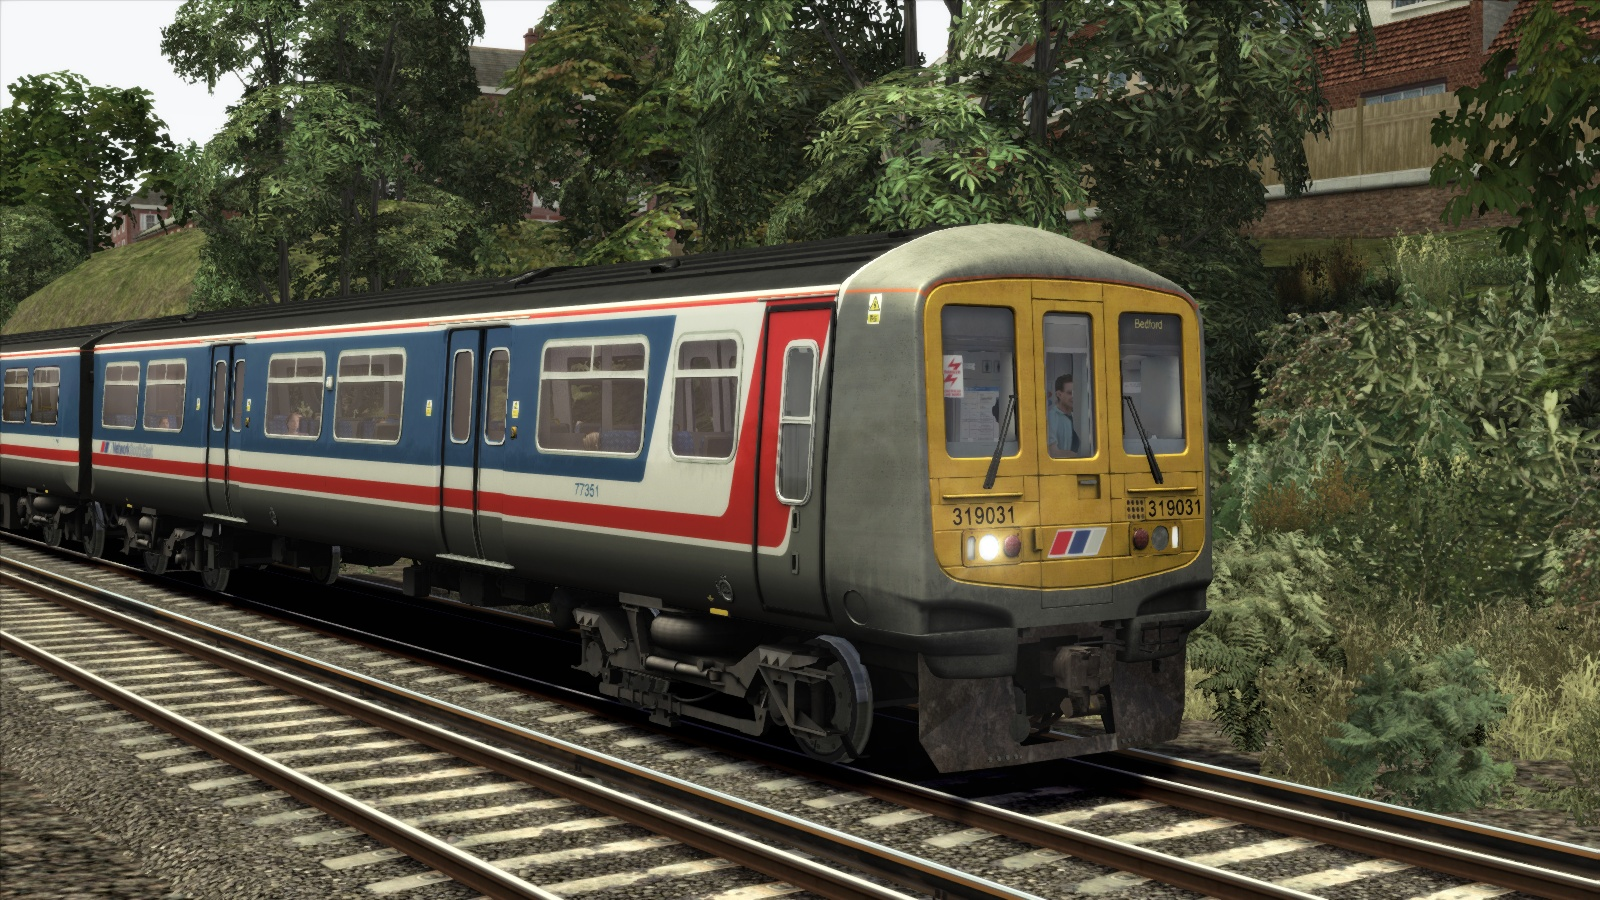 Network South East Class 319 Add-on Livery screenshot